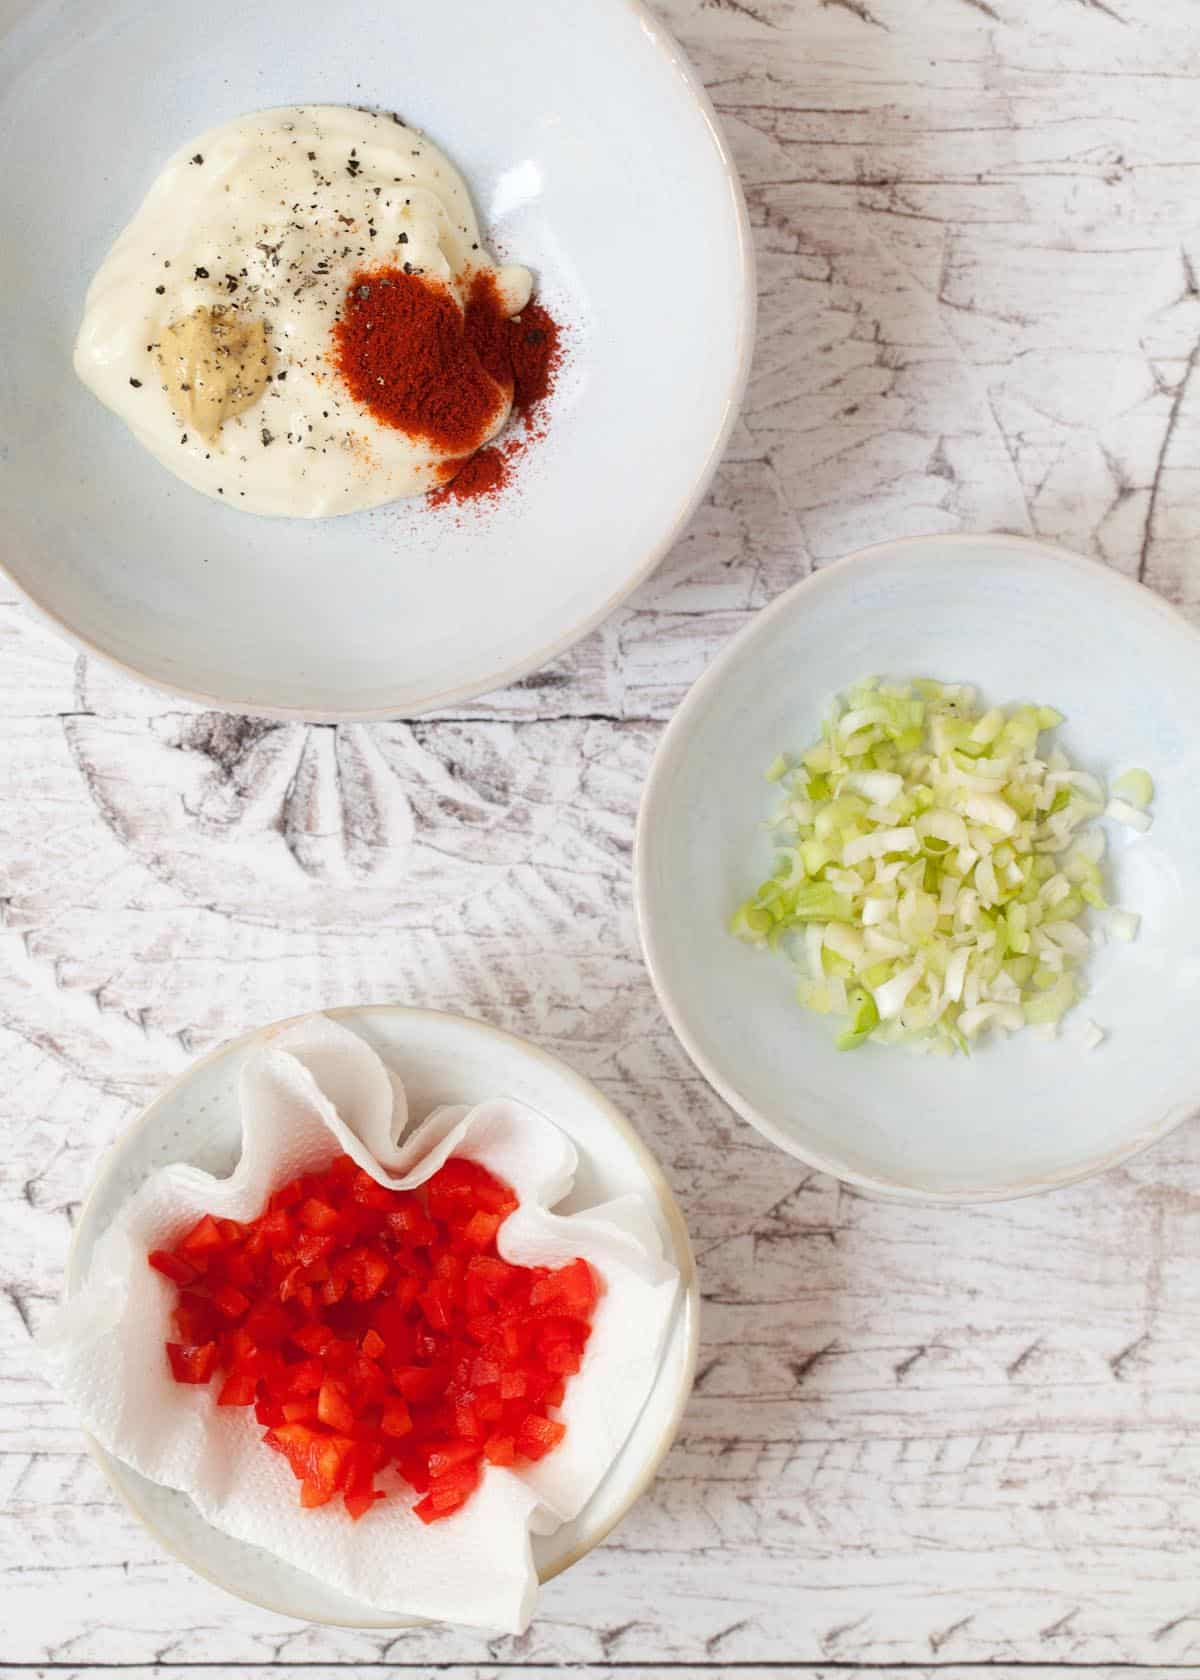 bowls of chopped salad onions, red pepper and mayonnaise